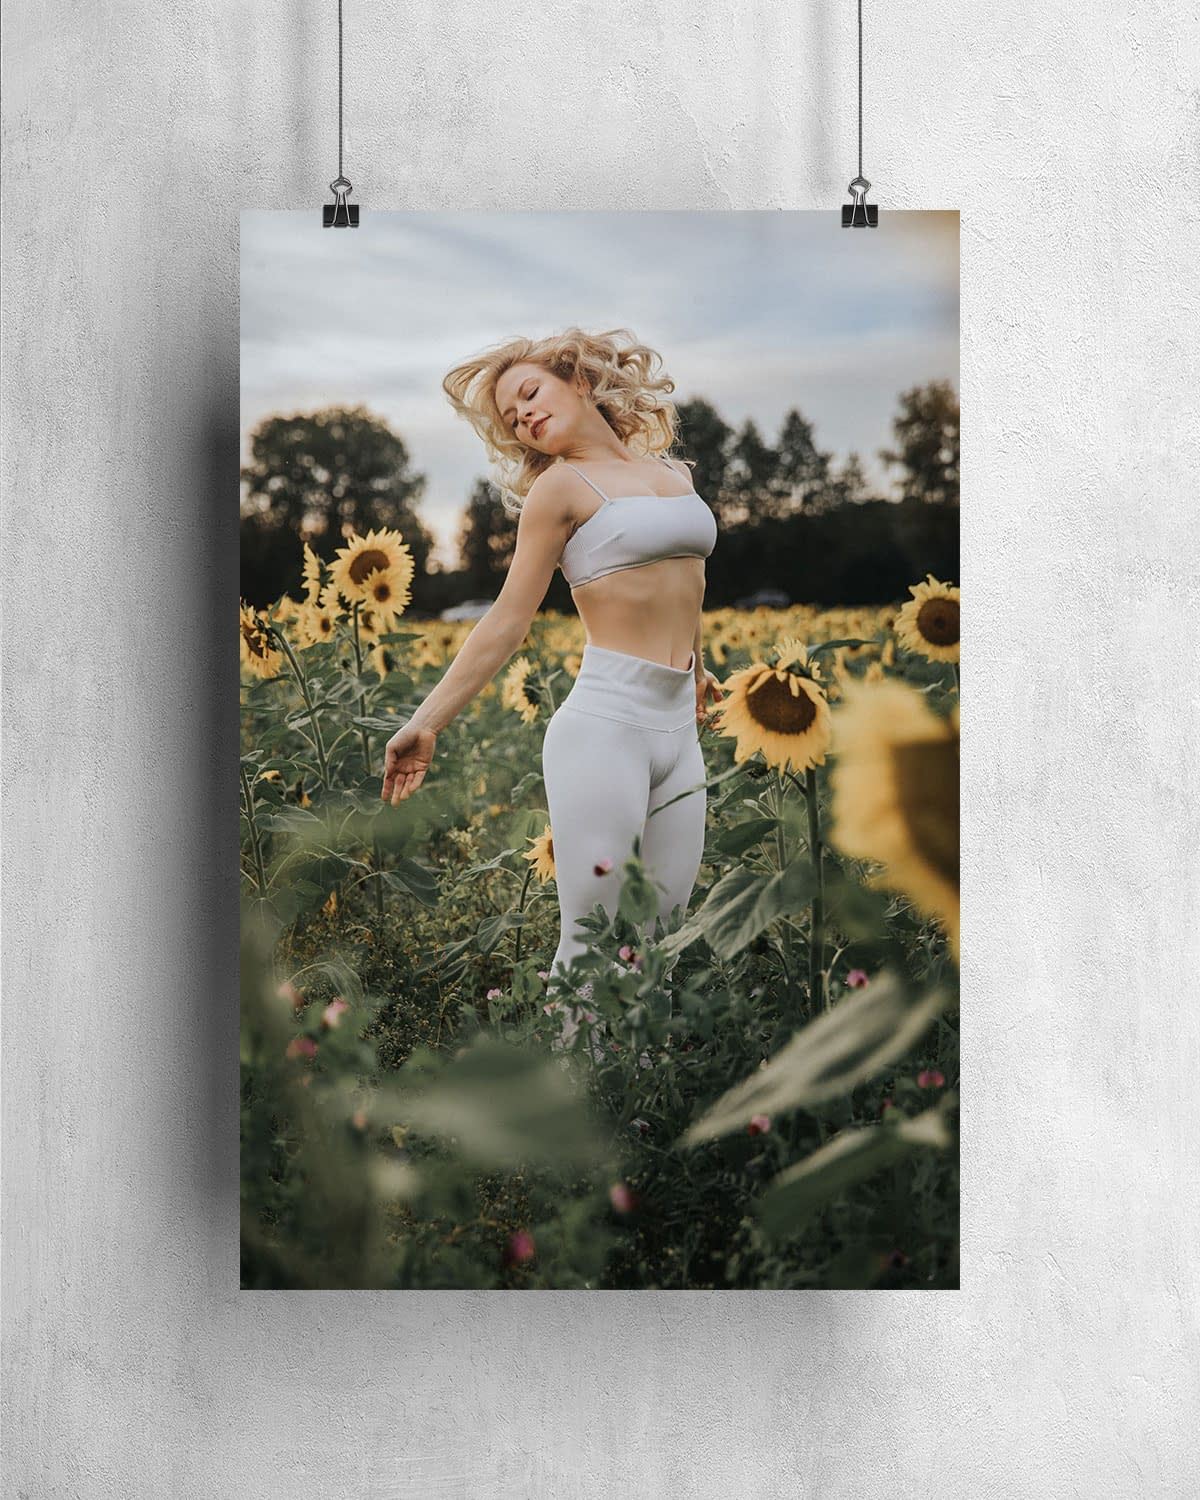 Poster - Sunflowers 3 - NZUP-006-05